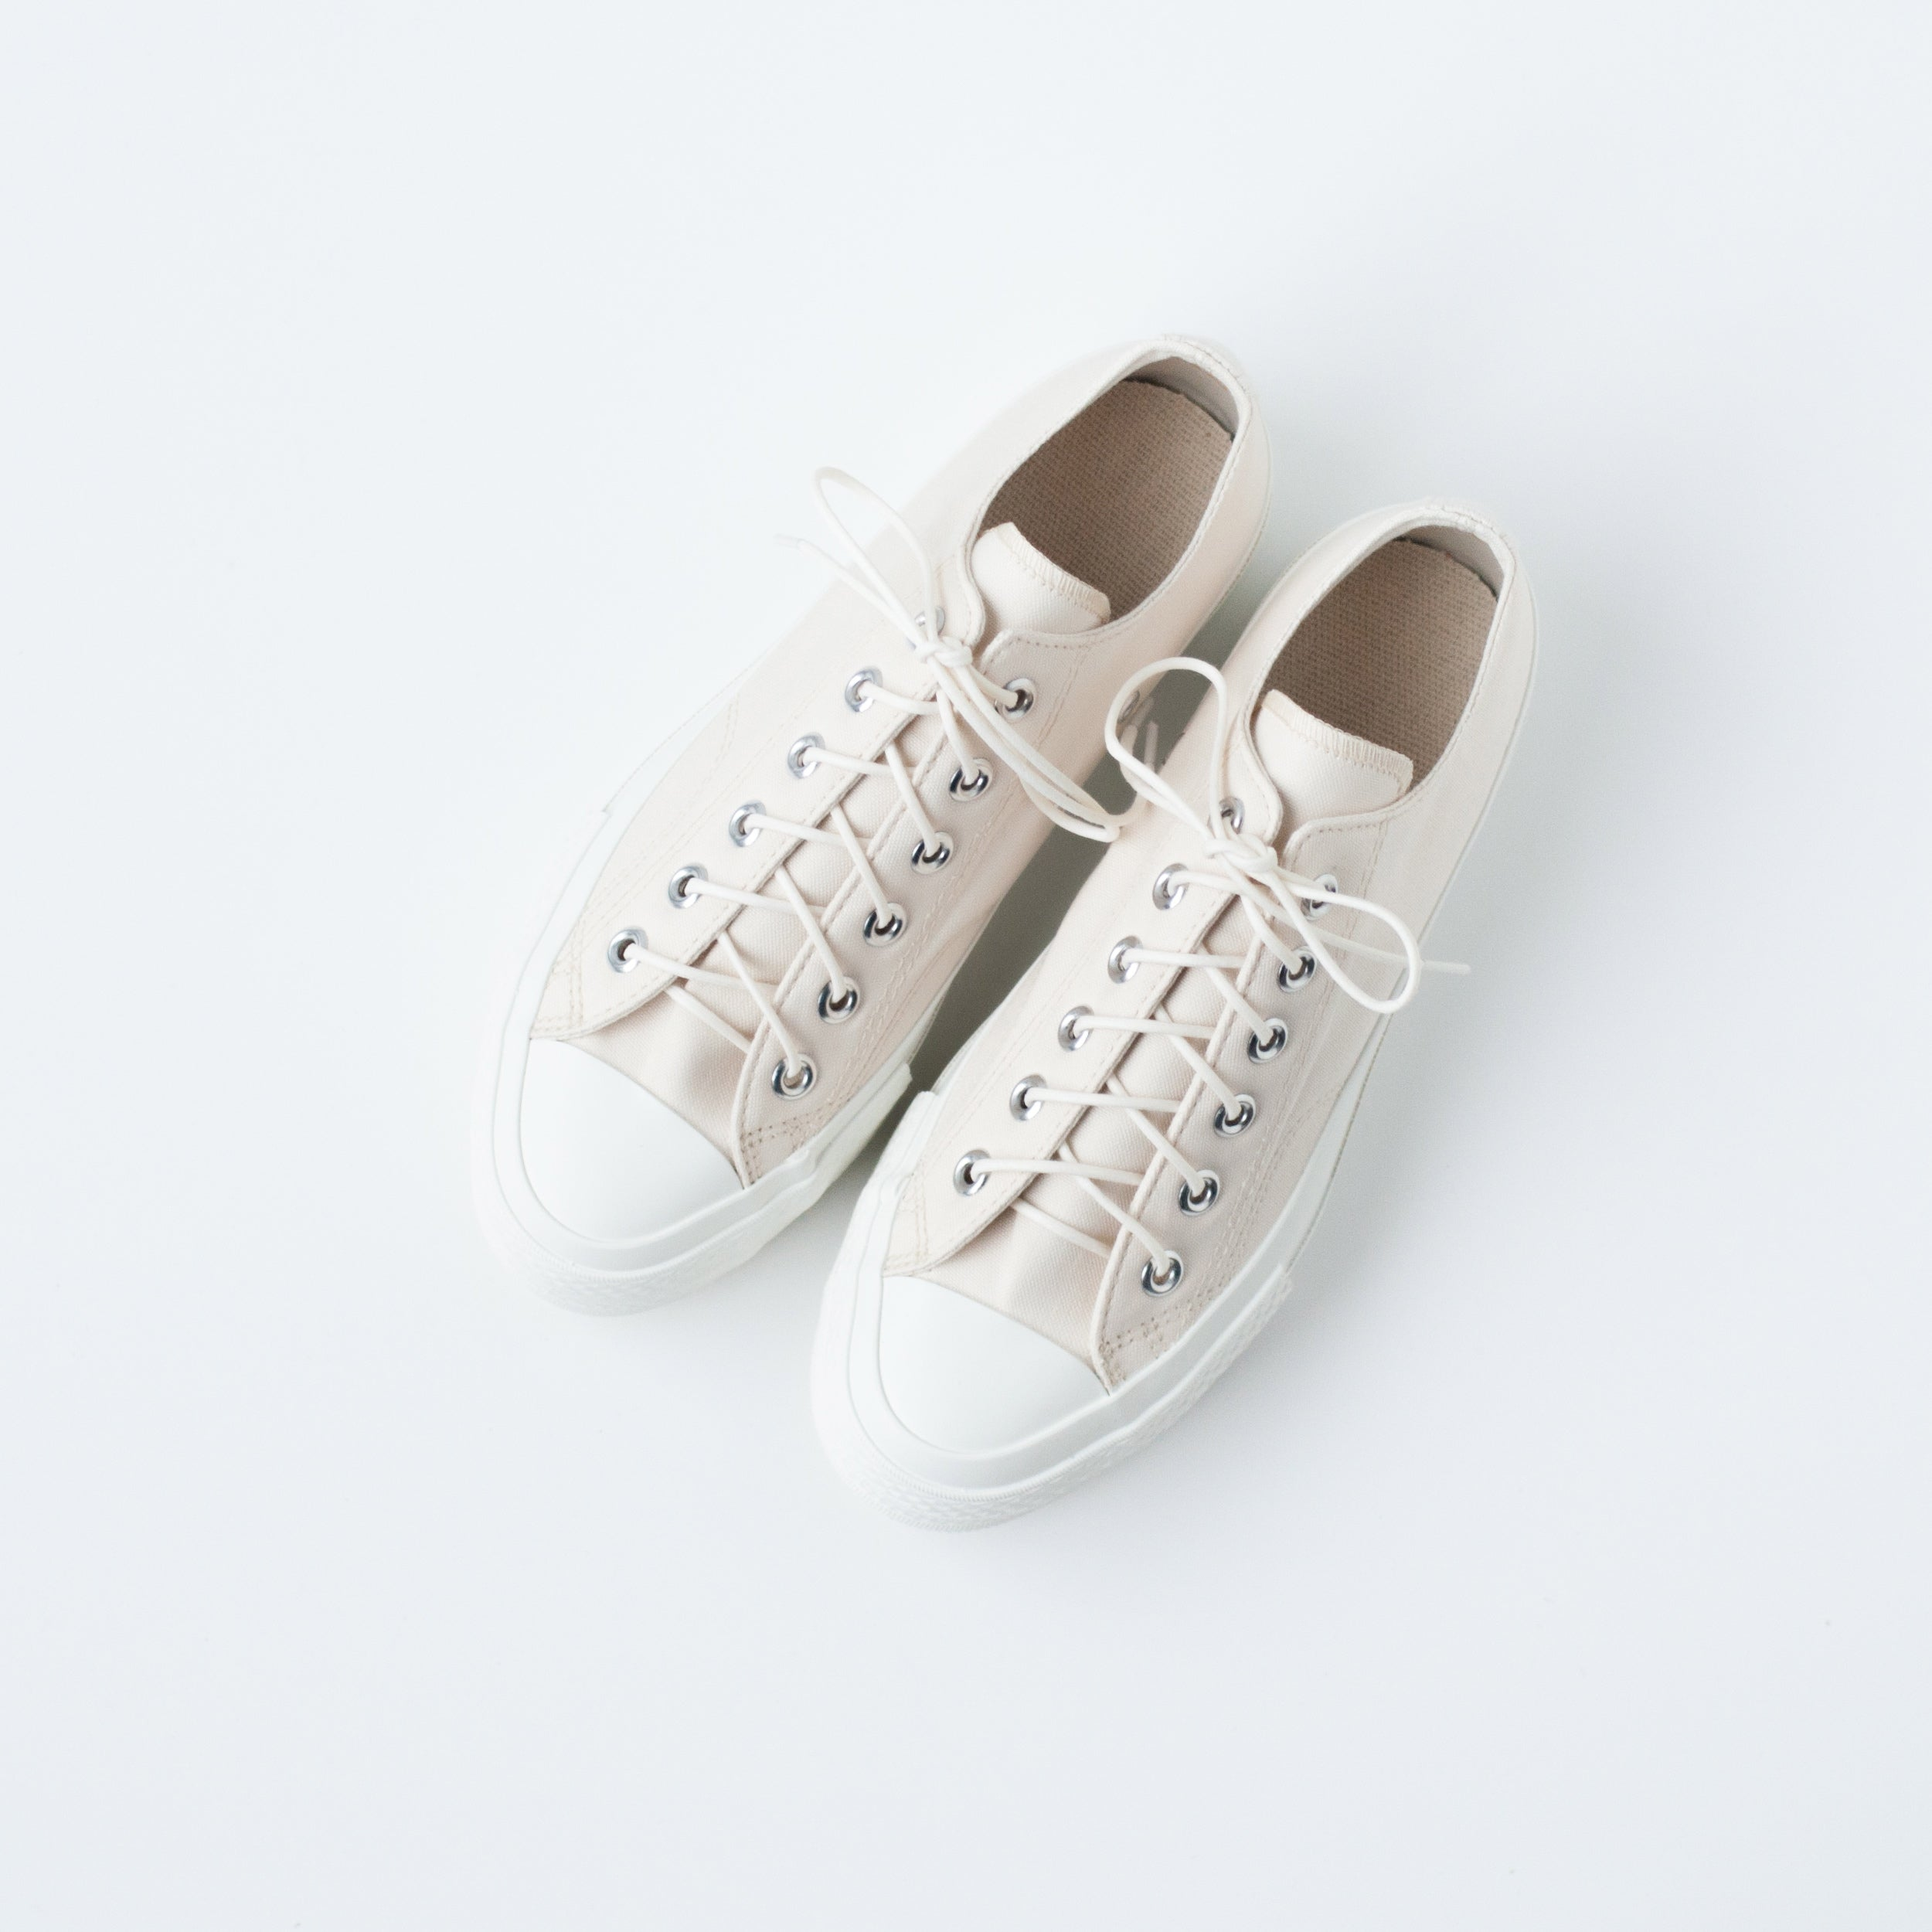 GYM SHOES / 077 - IVORY